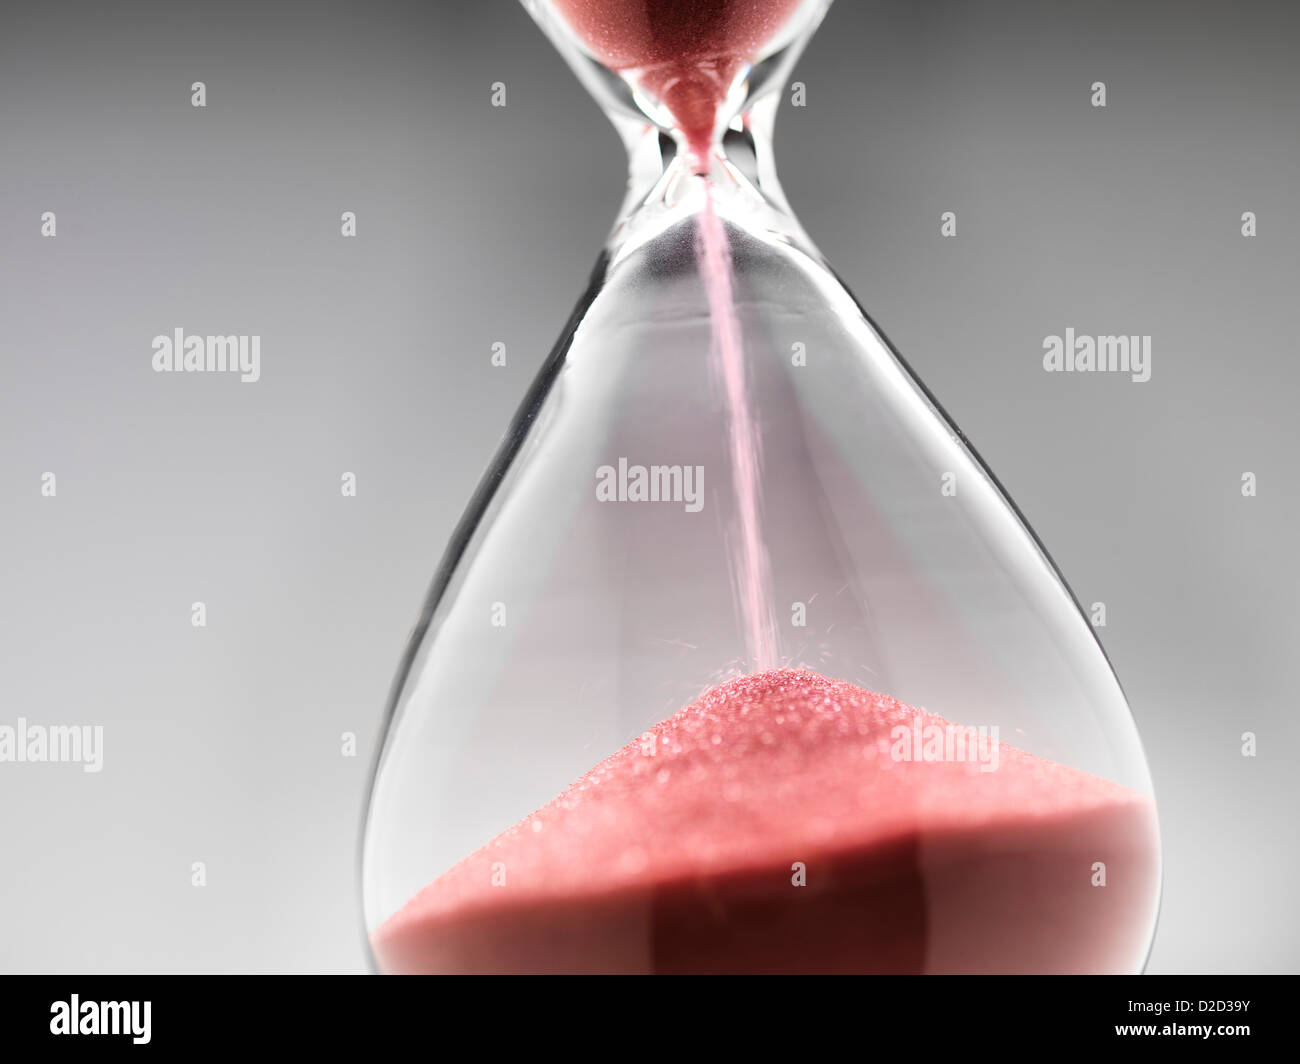 Hour glass close-up - Stock Image